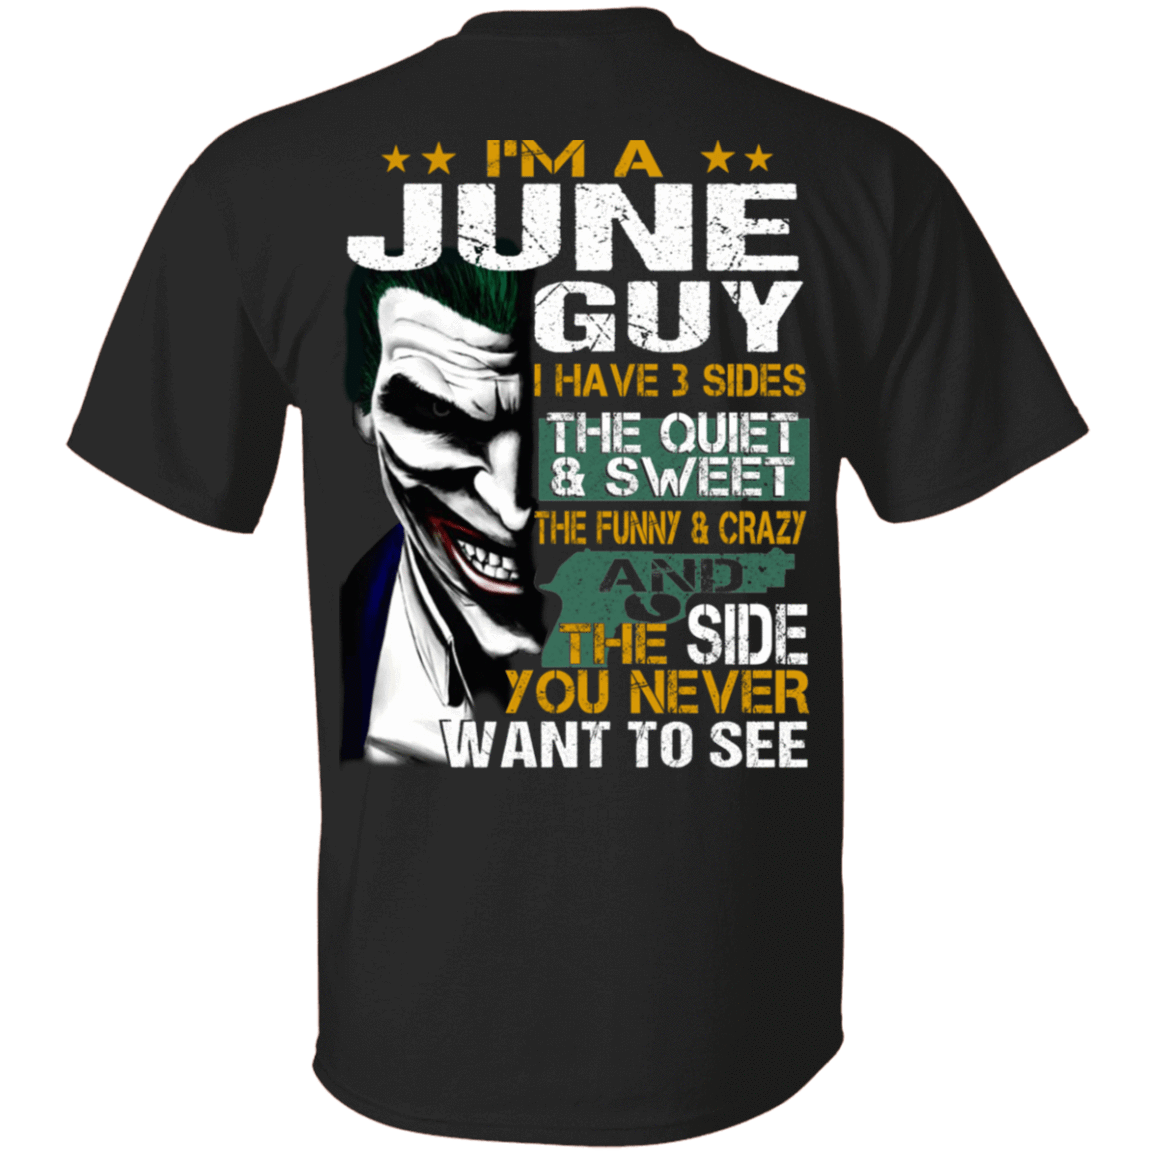 Joker June Guy Have 3 Sides The Quiet And Sweet T-Shirts, Hoodies 1049-9953-81647610-48144 - Tee Ript